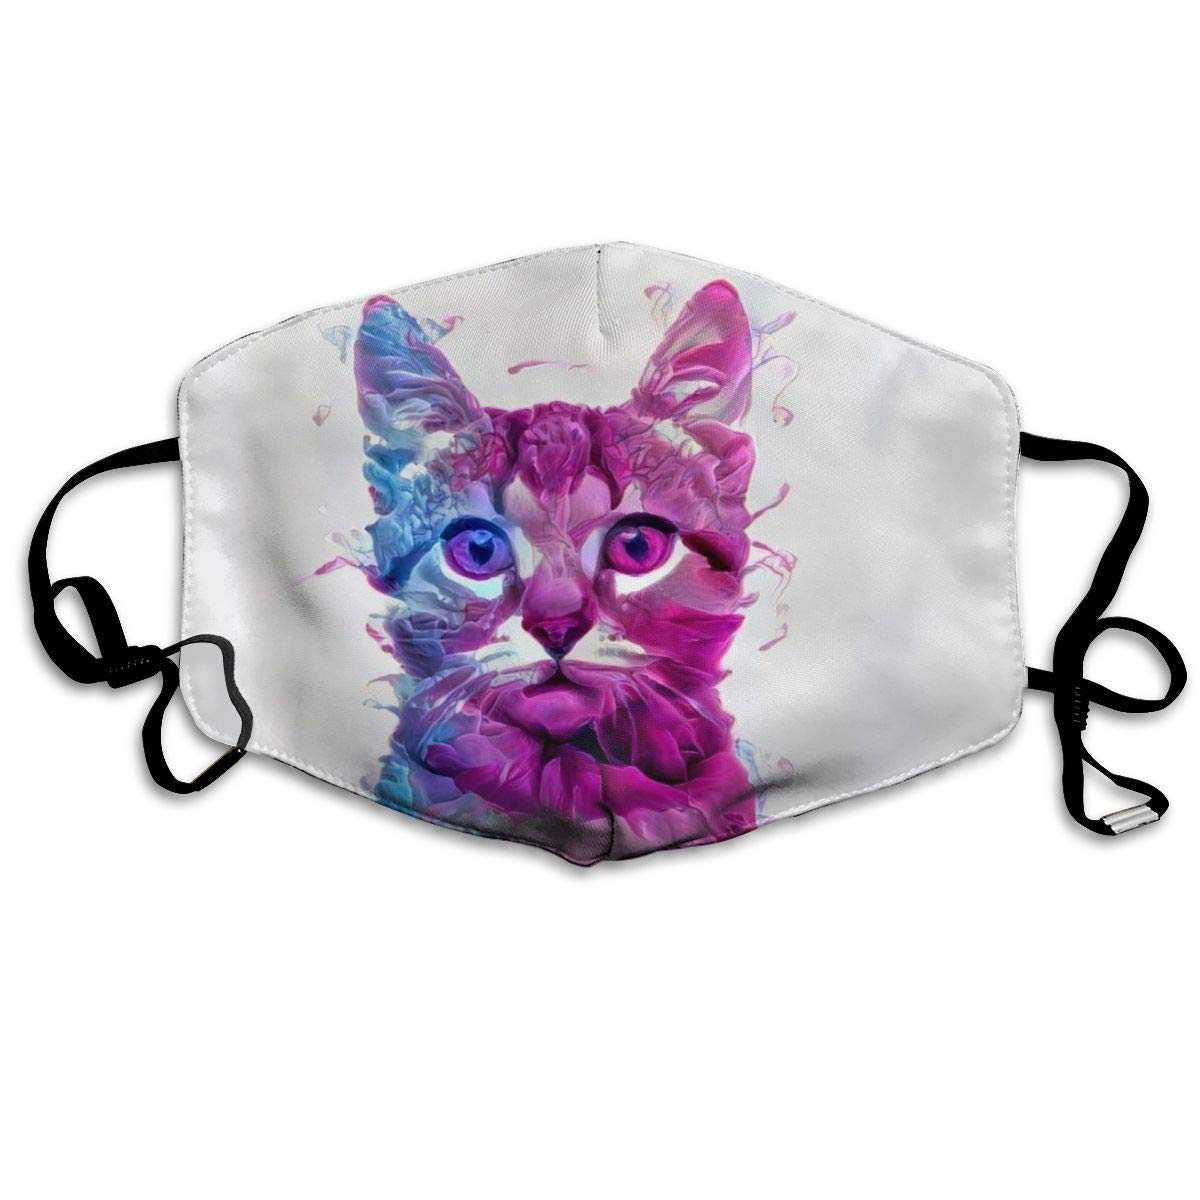 Daawqee Máscara de Boca, Unisex Colorful Cat Reusable Face Mouth Cover Mask Windproof Mask Breathable 7 X 4.3 in